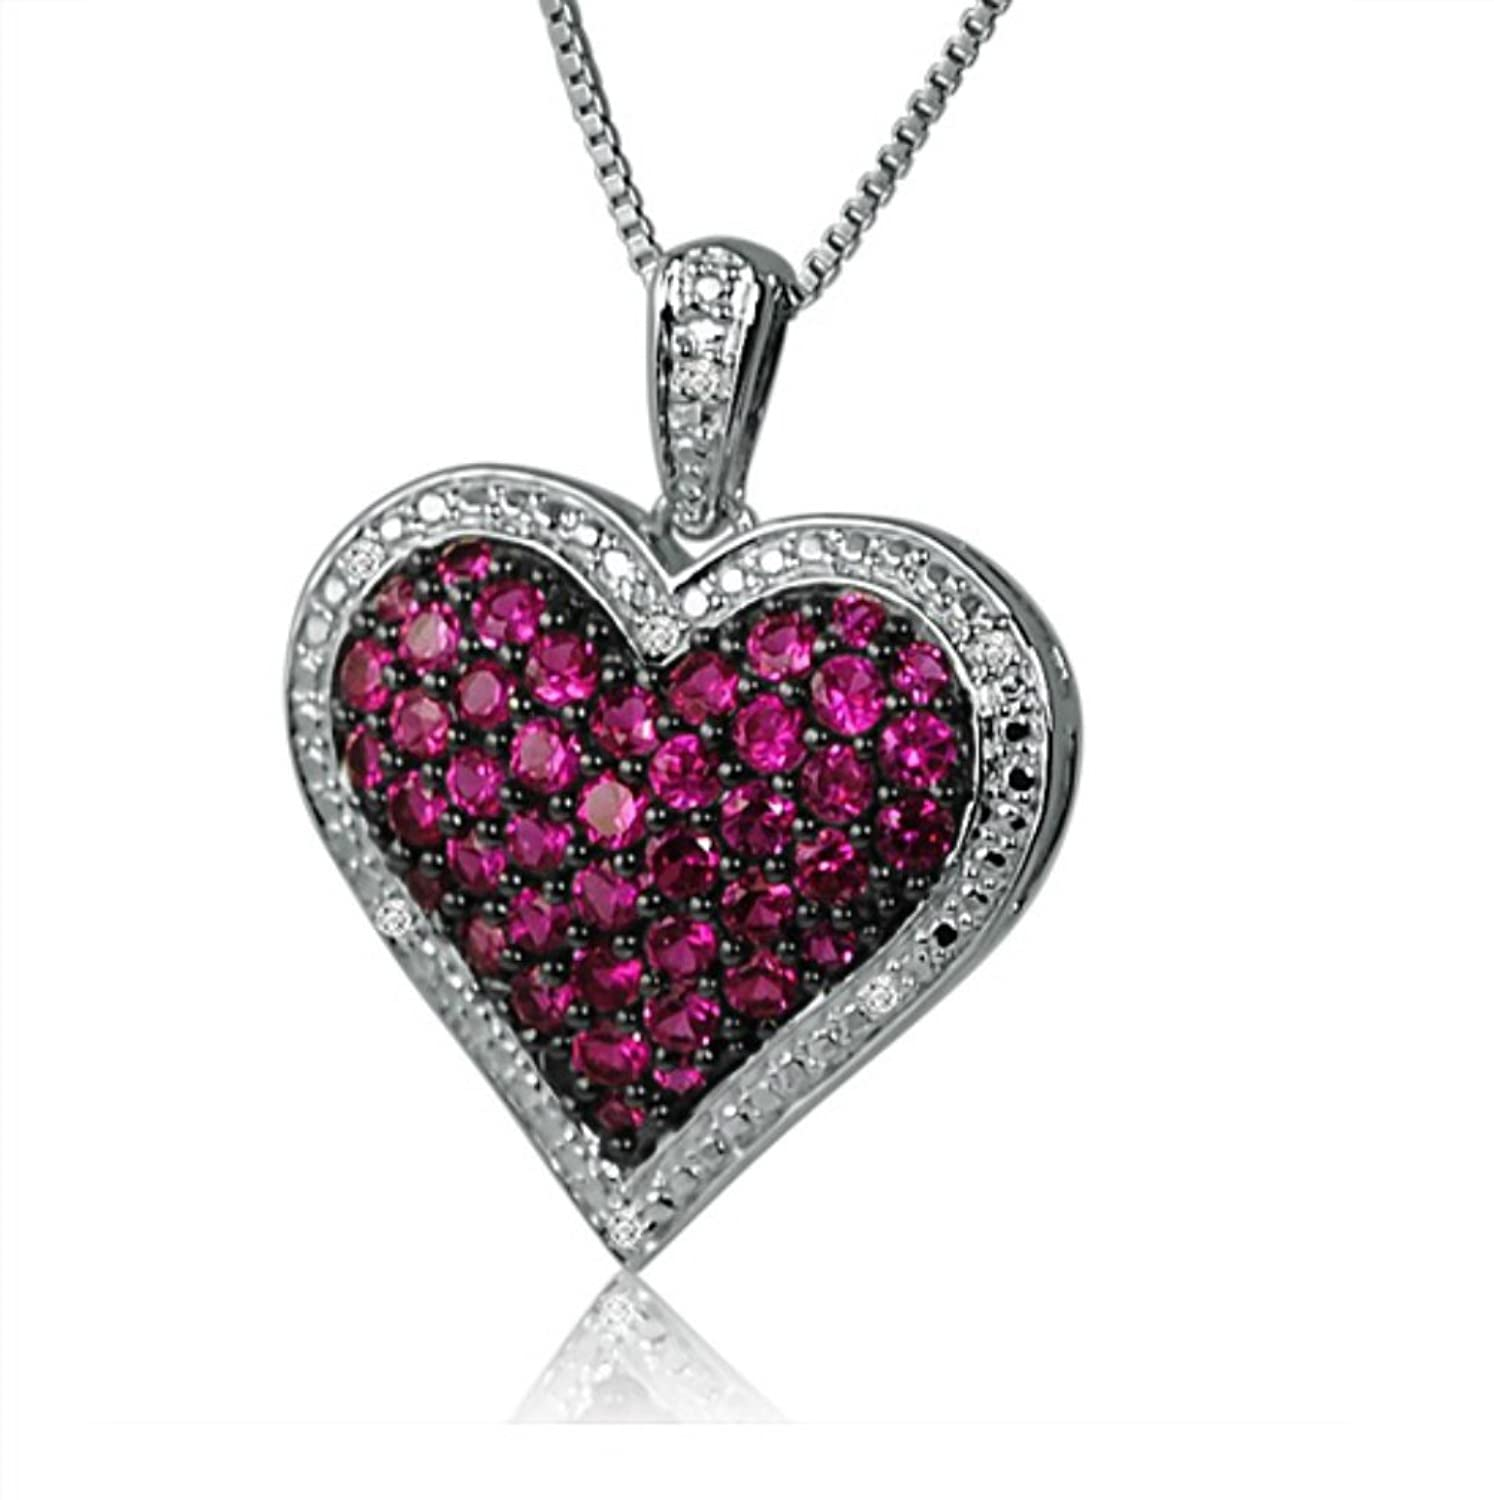 Amazon created ruby and diamond puffed heart pendant necklace amazon created ruby and diamond puffed heart pendant necklace in sterling silver on an 18 inch box chain jewelry aloadofball Image collections